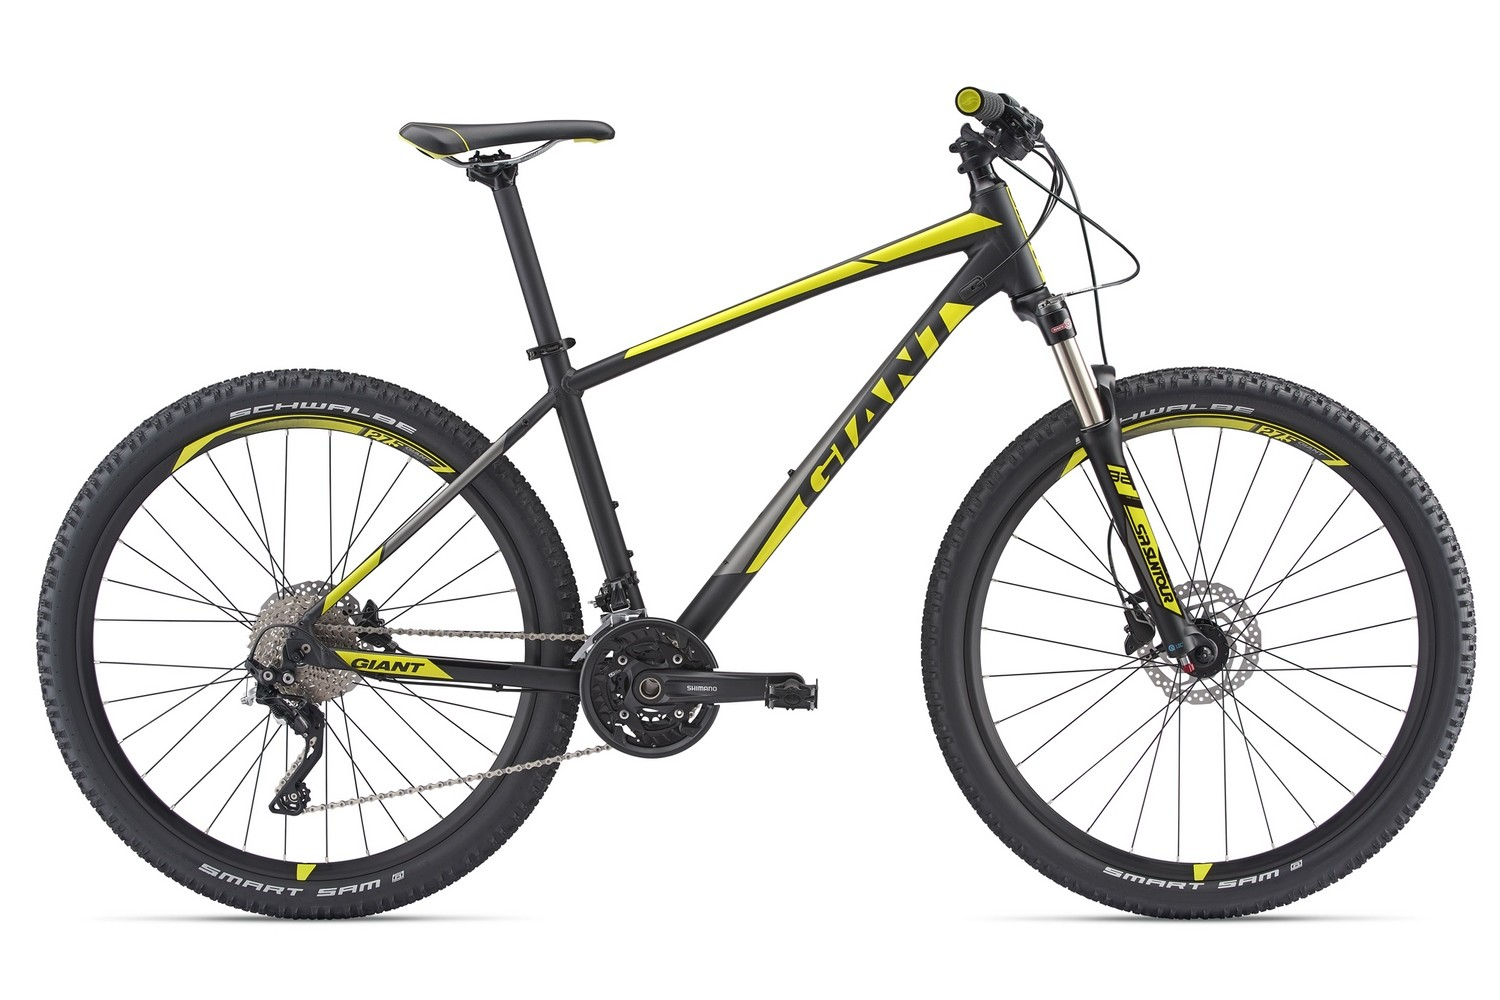 Talon 1 GE (2018) Giant